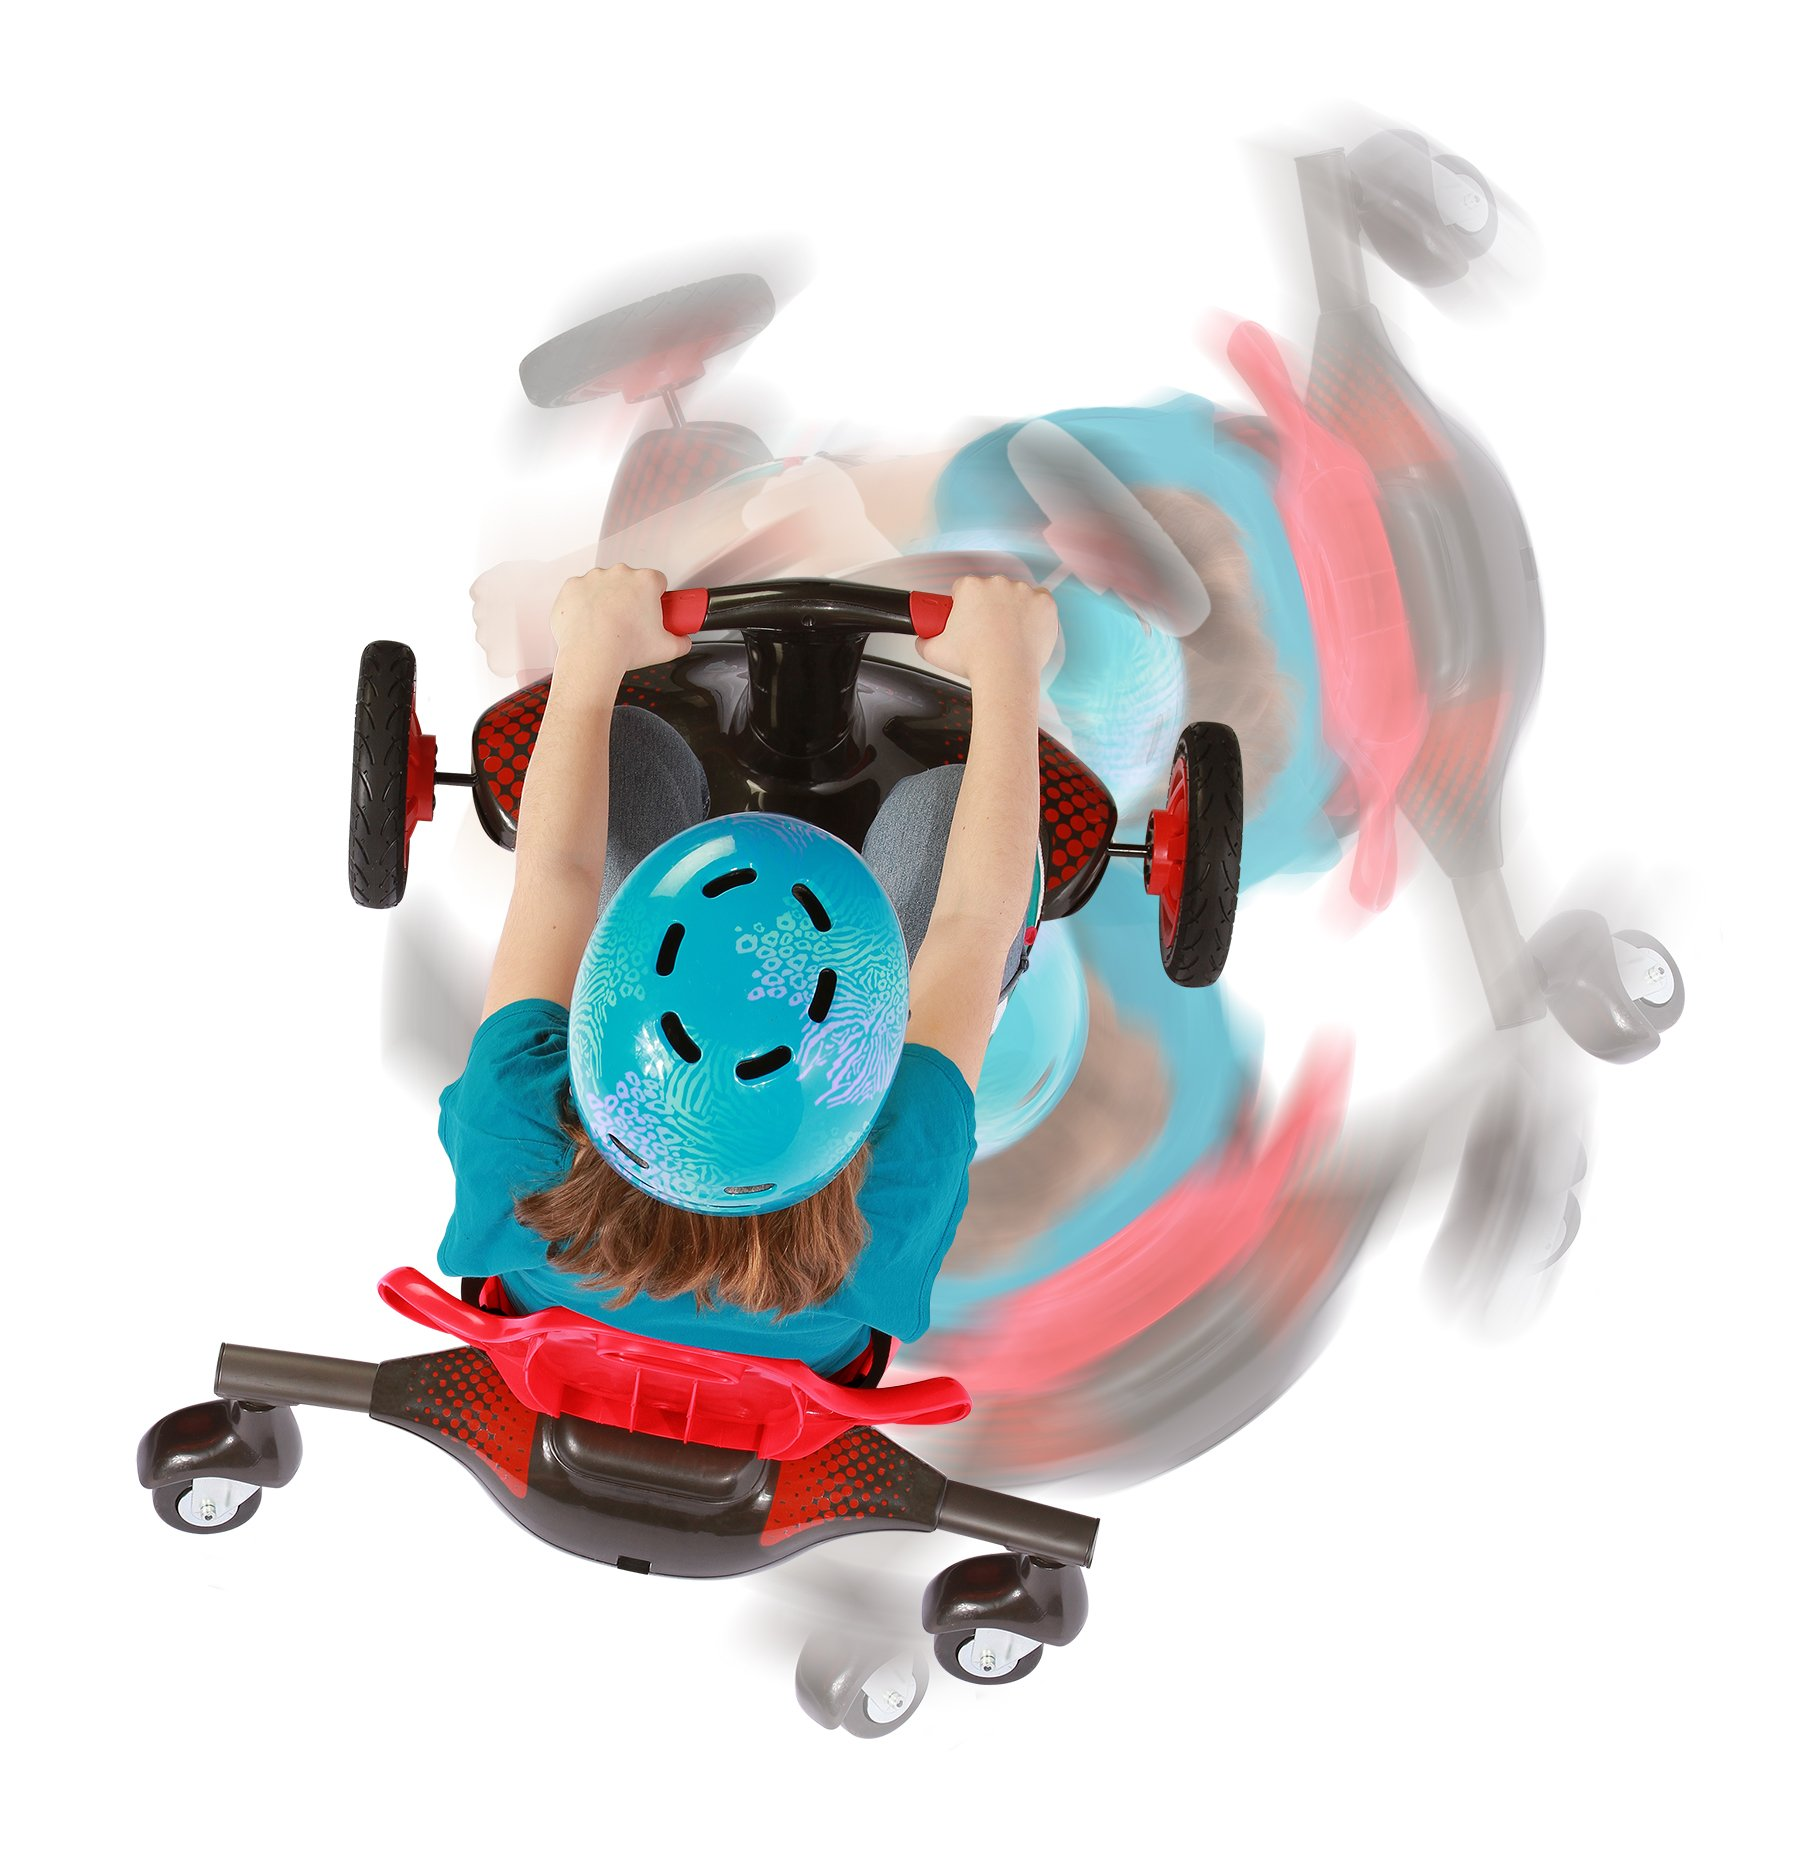 Rollplay Turnado 24-Volt Battery-Powered Ride-On by Rollplay (Image #4)